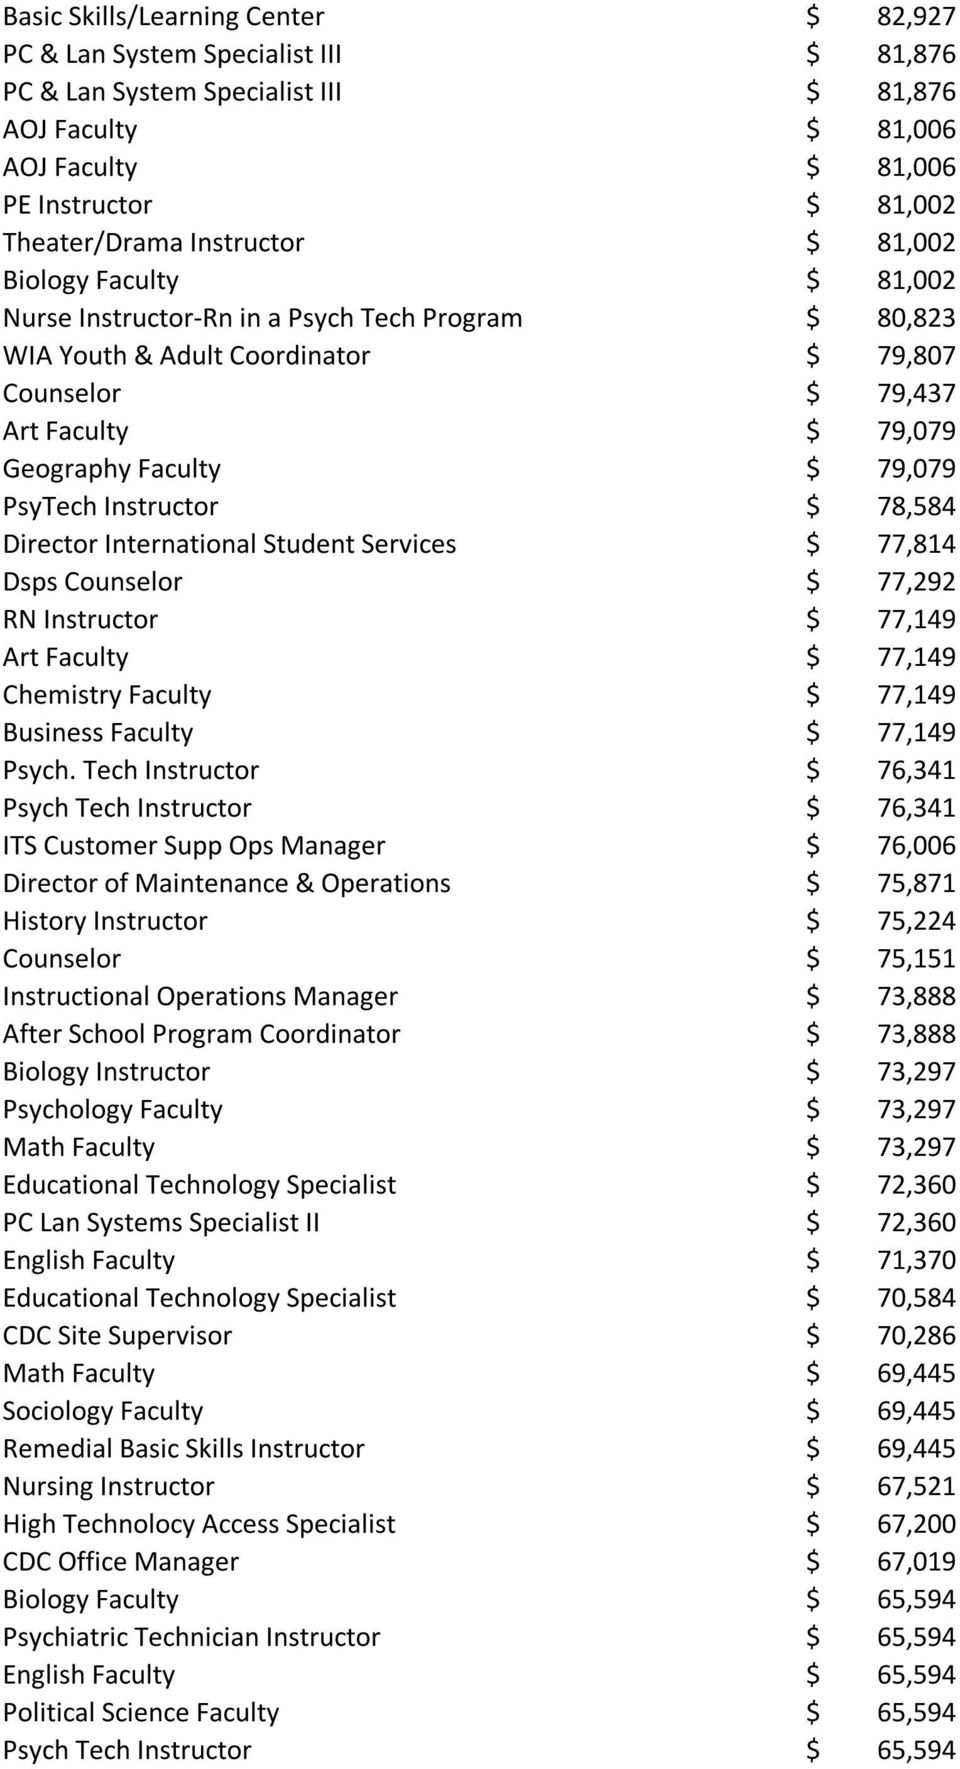 79,079 PsyTech Instructor $ 78,584 Director International Student Services $ 77,814 Dsps Counselor $ 77,292 RN Instructor $ 77,149 Art Faculty $ 77,149 Chemistry Faculty $ 77,149 Business Faculty $